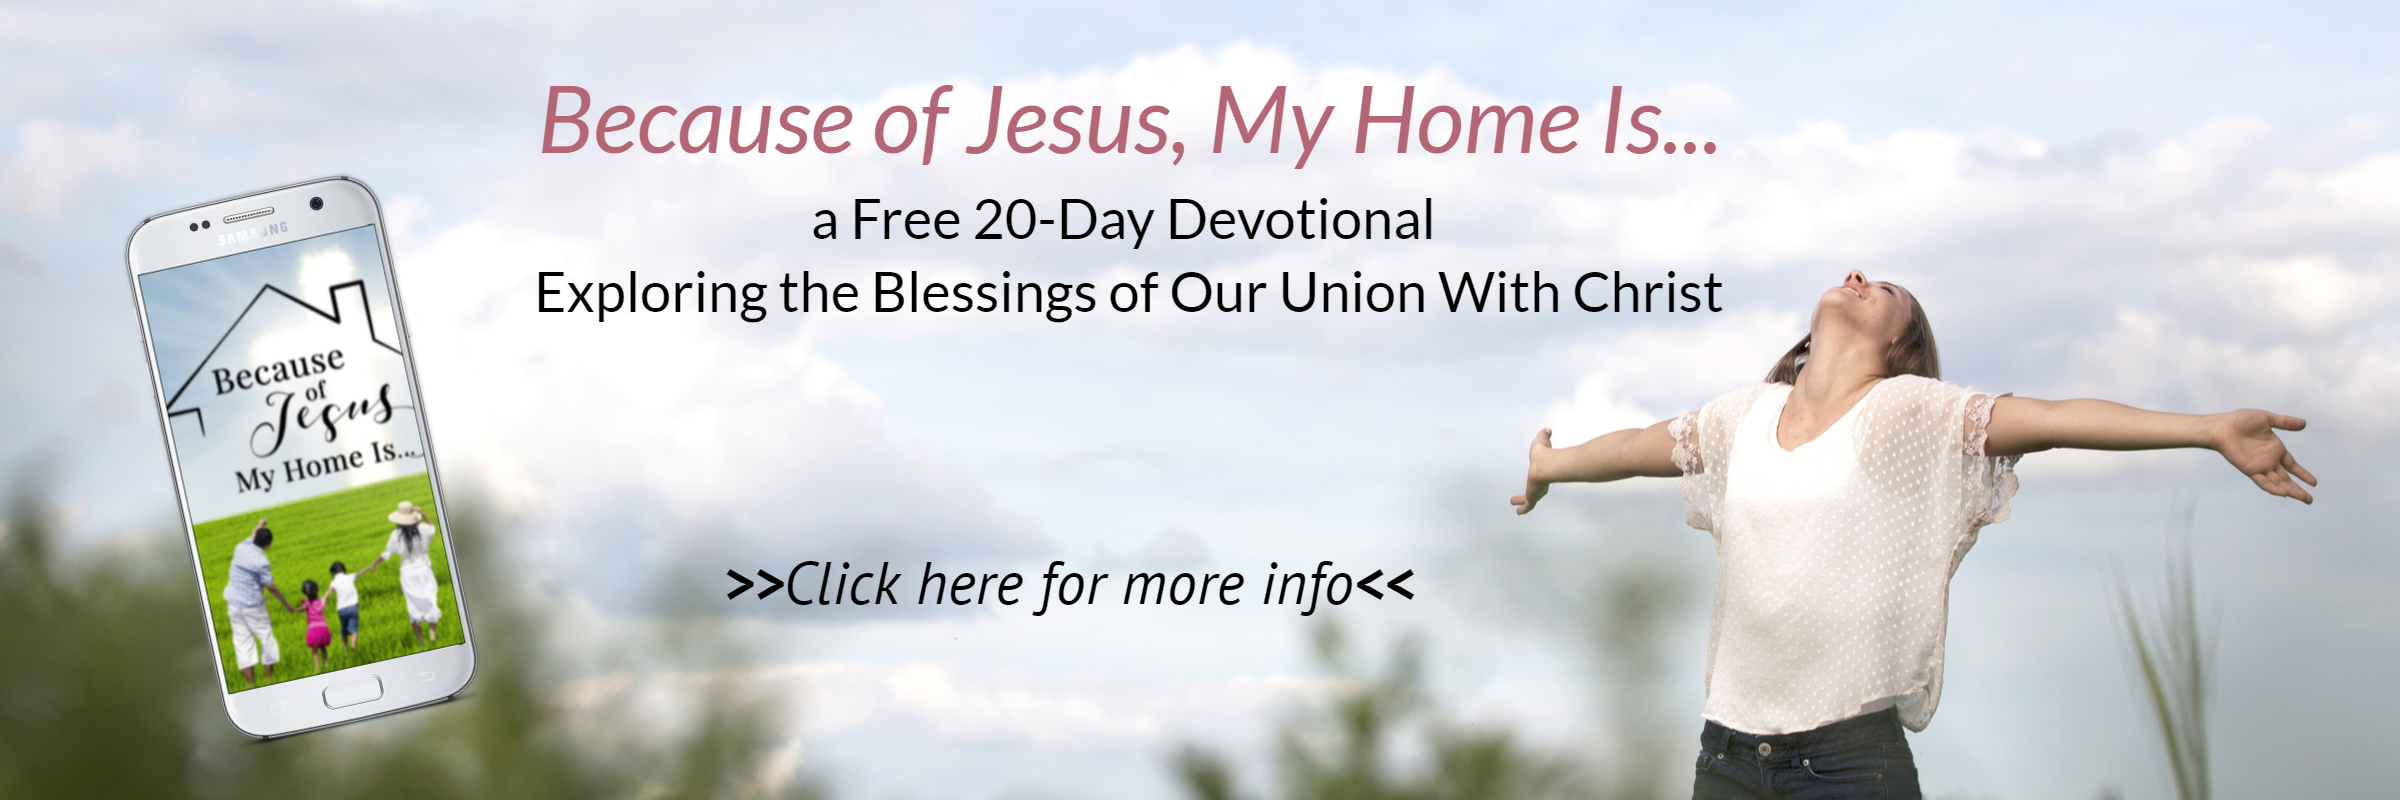 Free Devotional! Because of Jesus, My Home Is...